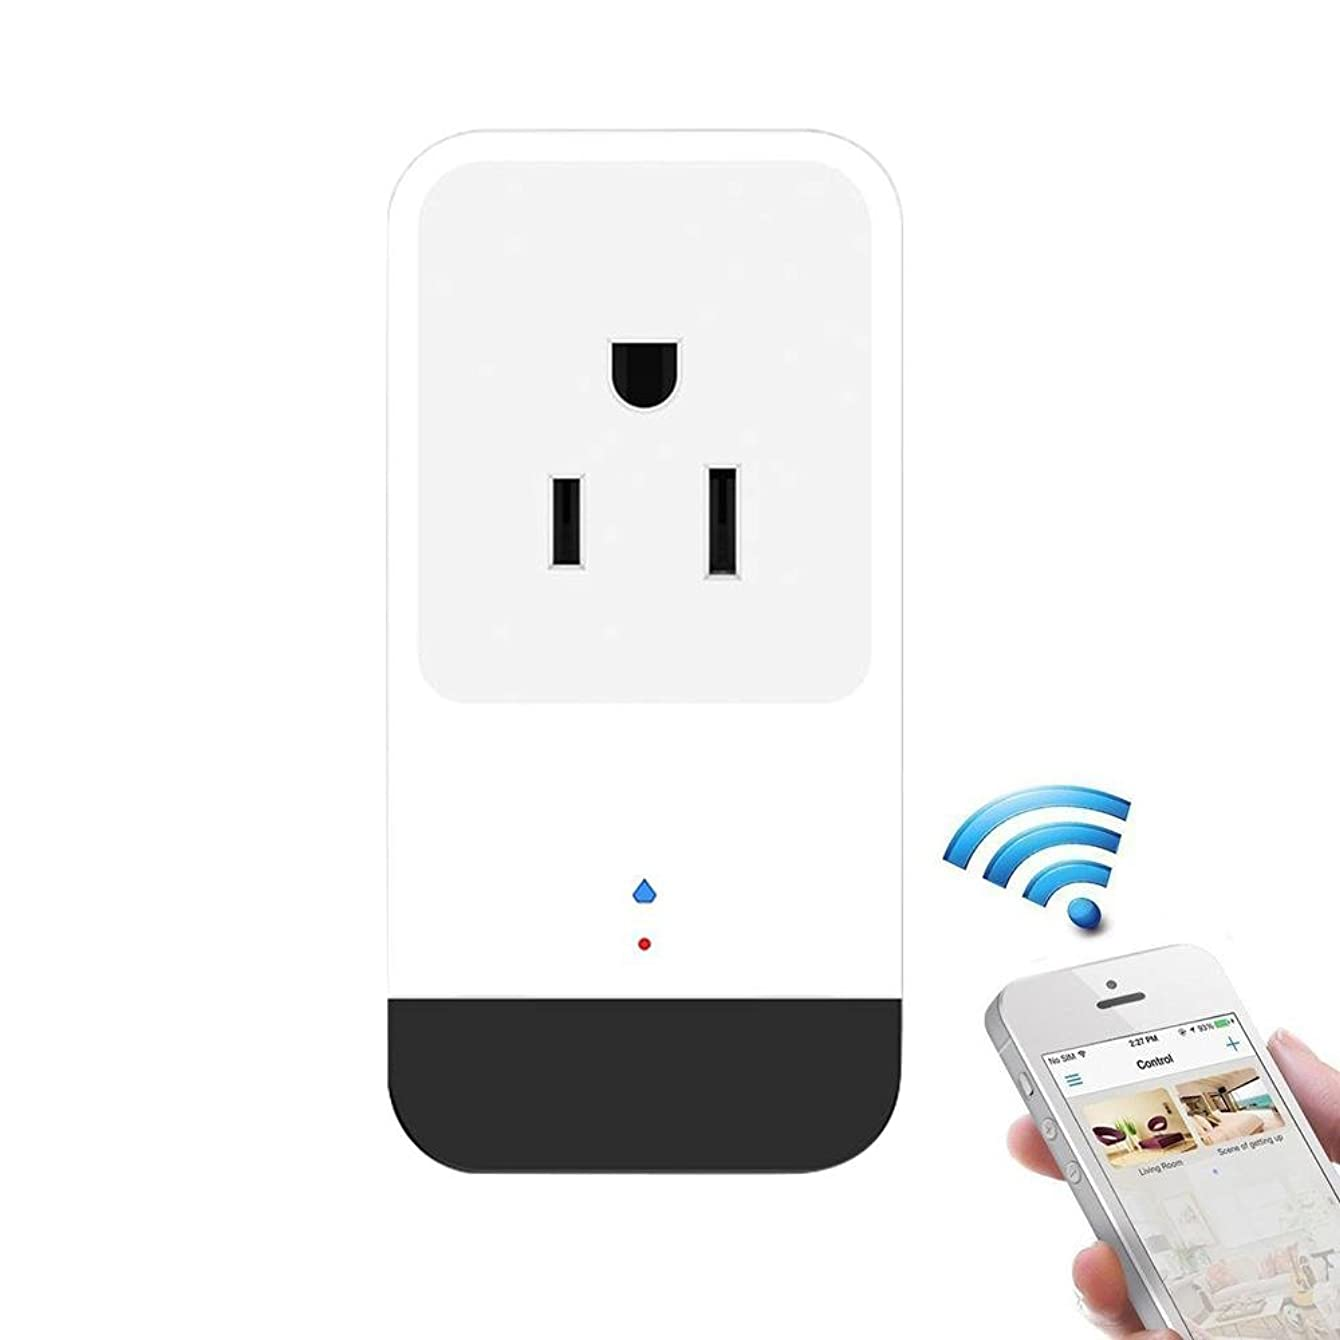 Teepao WiFi Smart Mini Plug IR Control Air Conditioner Works with Alexa and Google Home, Wireless Remote Control Electrical Outlet Switch with Energy Monitoring, Support Voice and Phone App Controlled